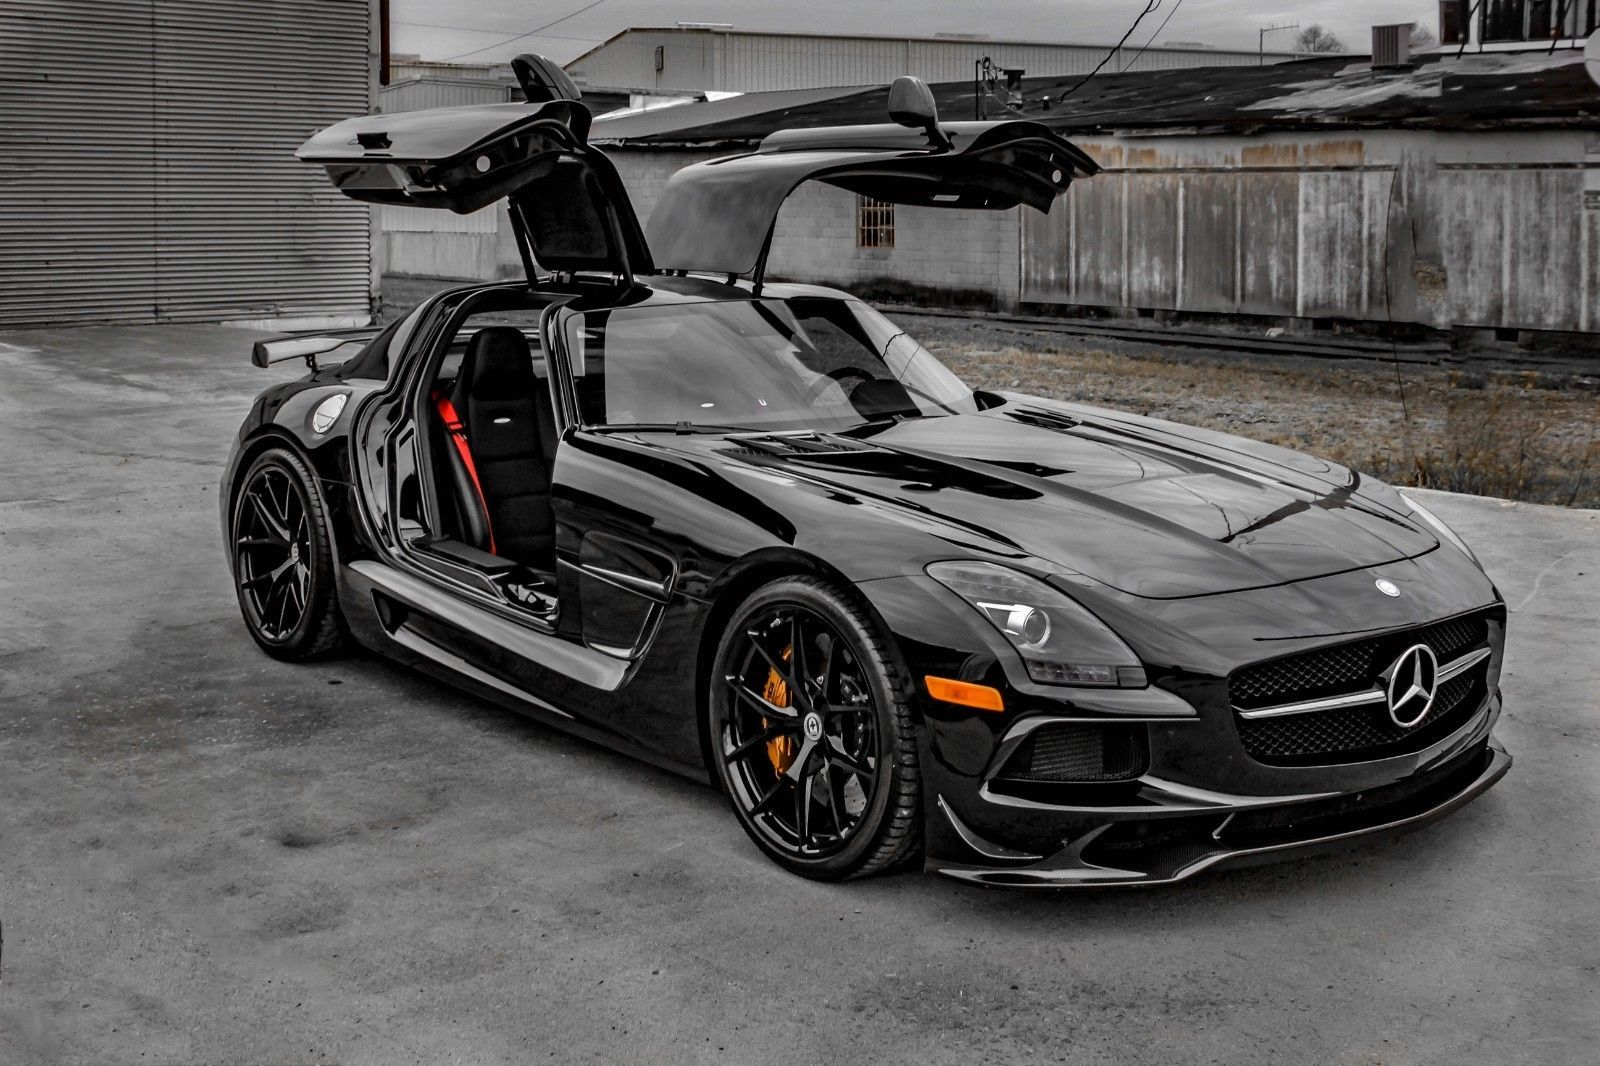 Sls Black Series >> 2014 Mercedes Benz Sls Amg Black Series Bil Bilar Och Serier